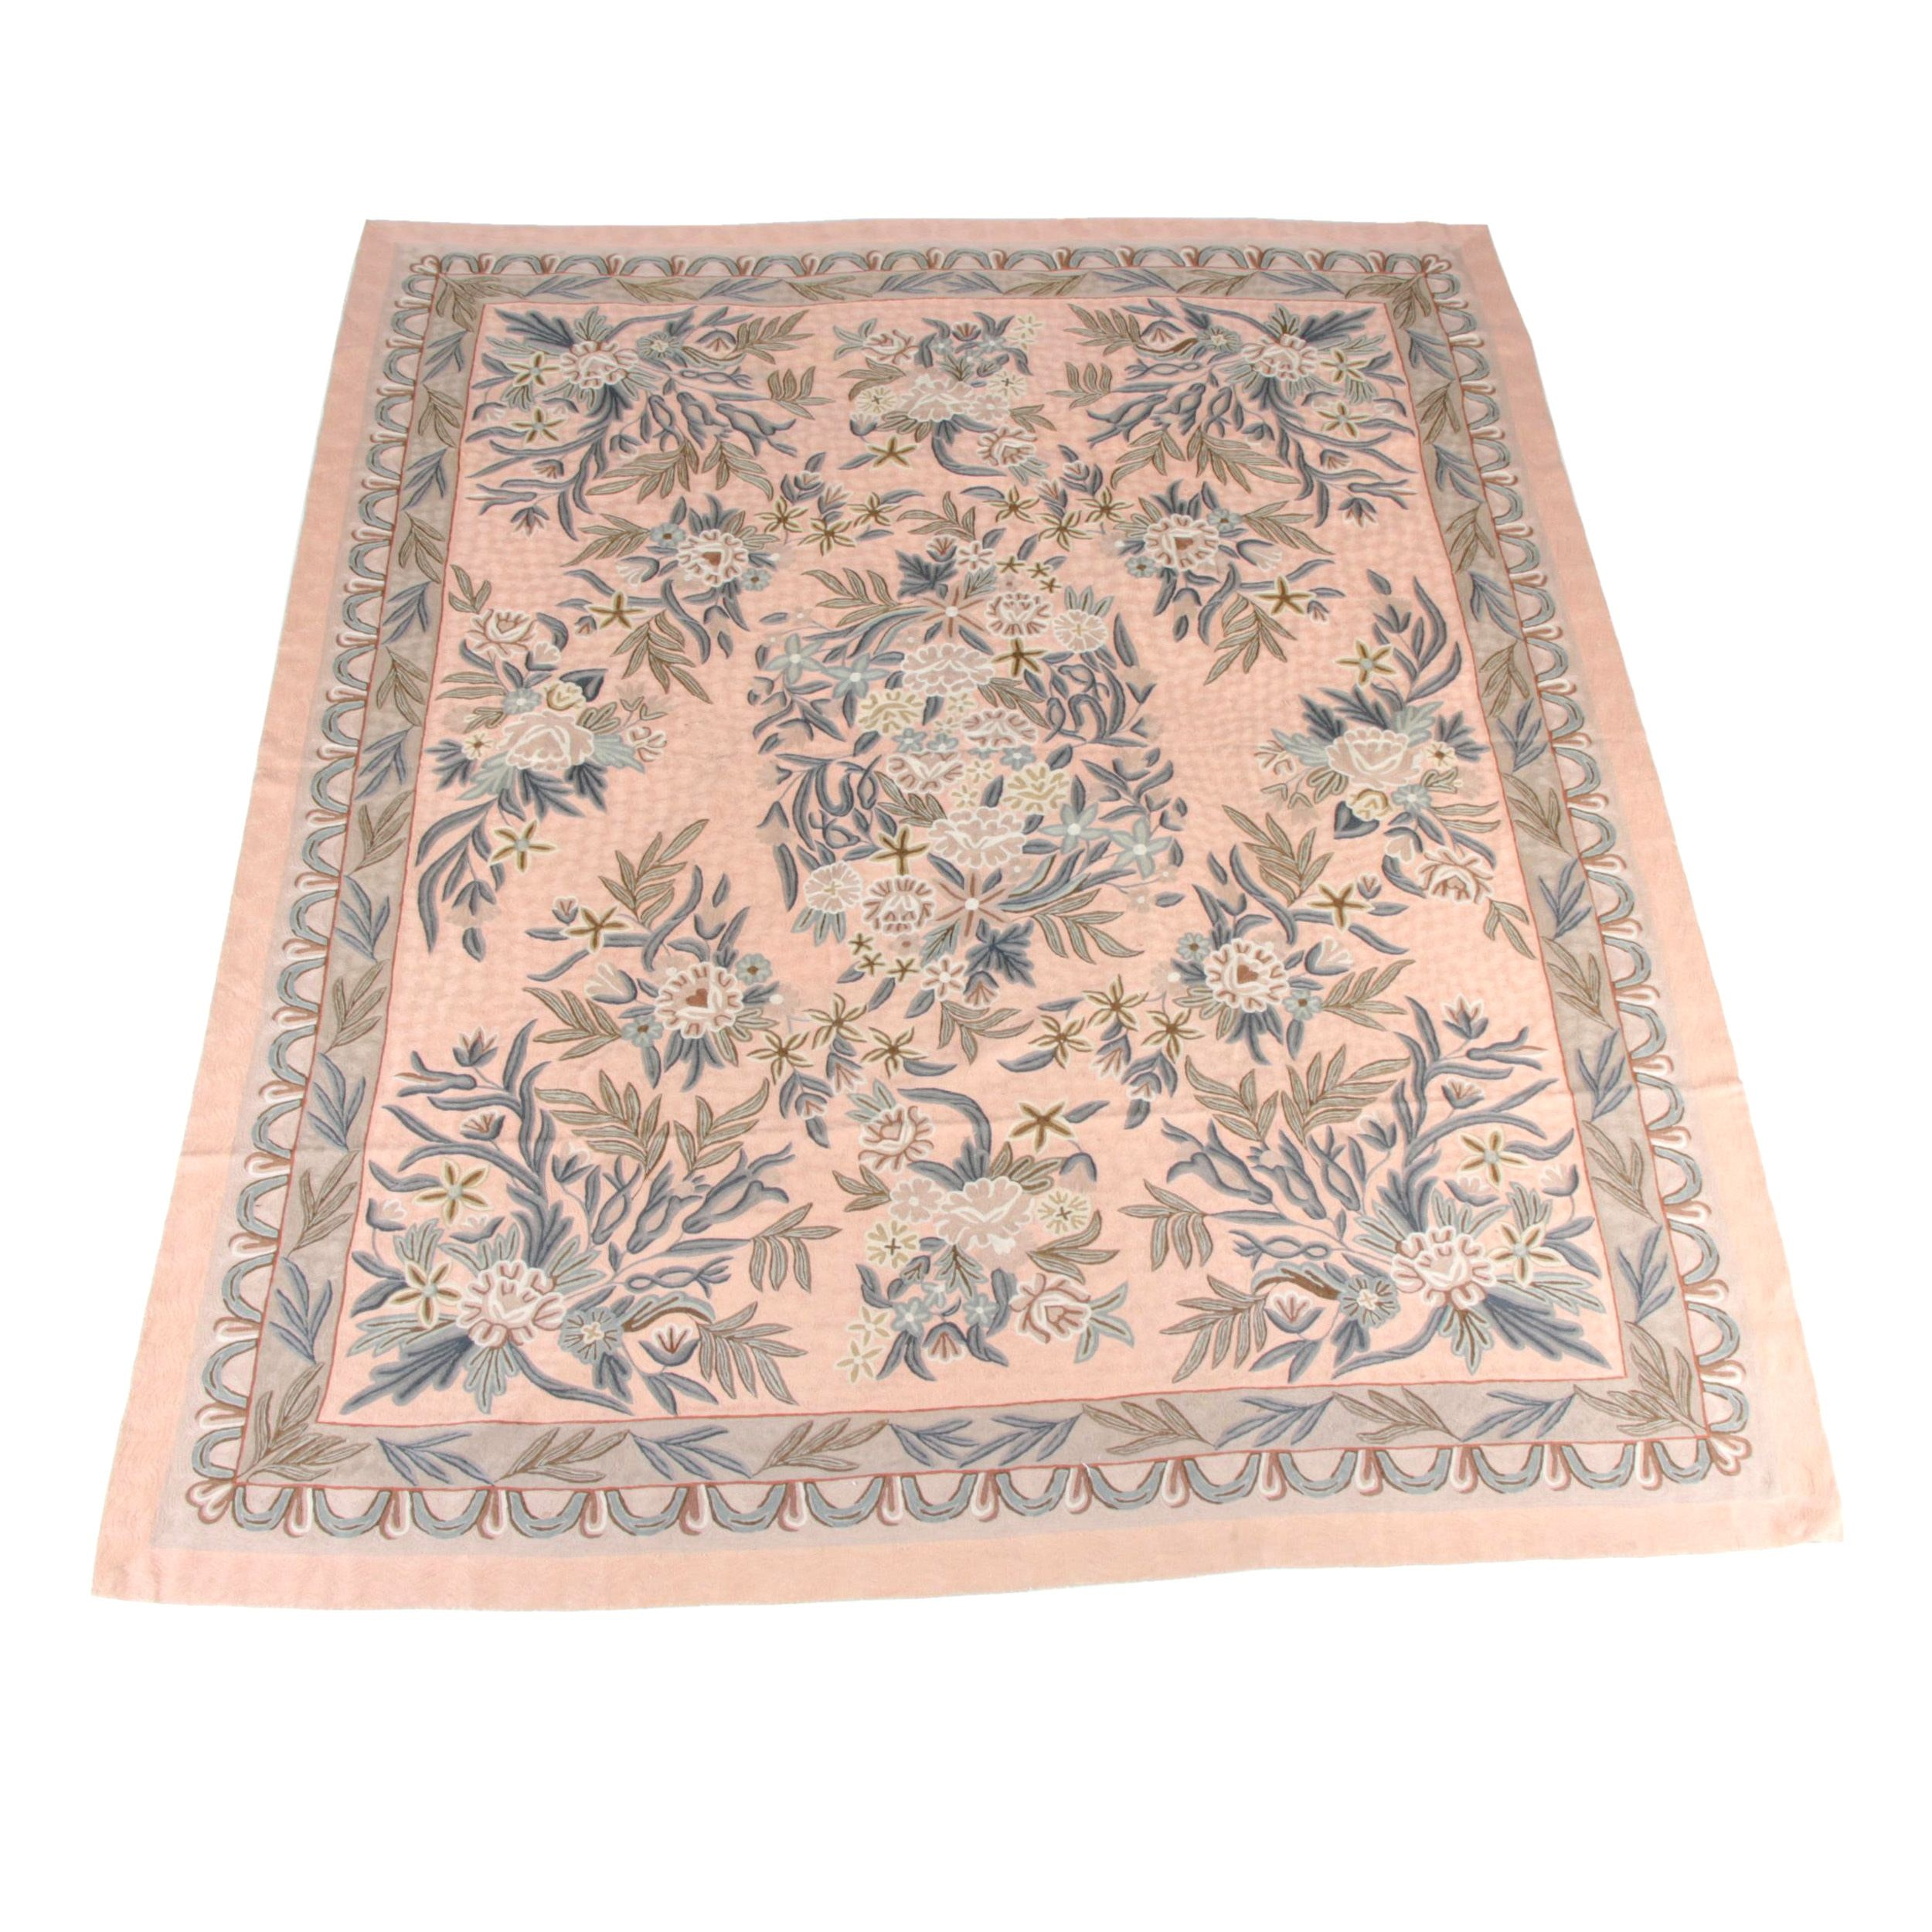 Handwoven Indian Floral Wool Area Rug